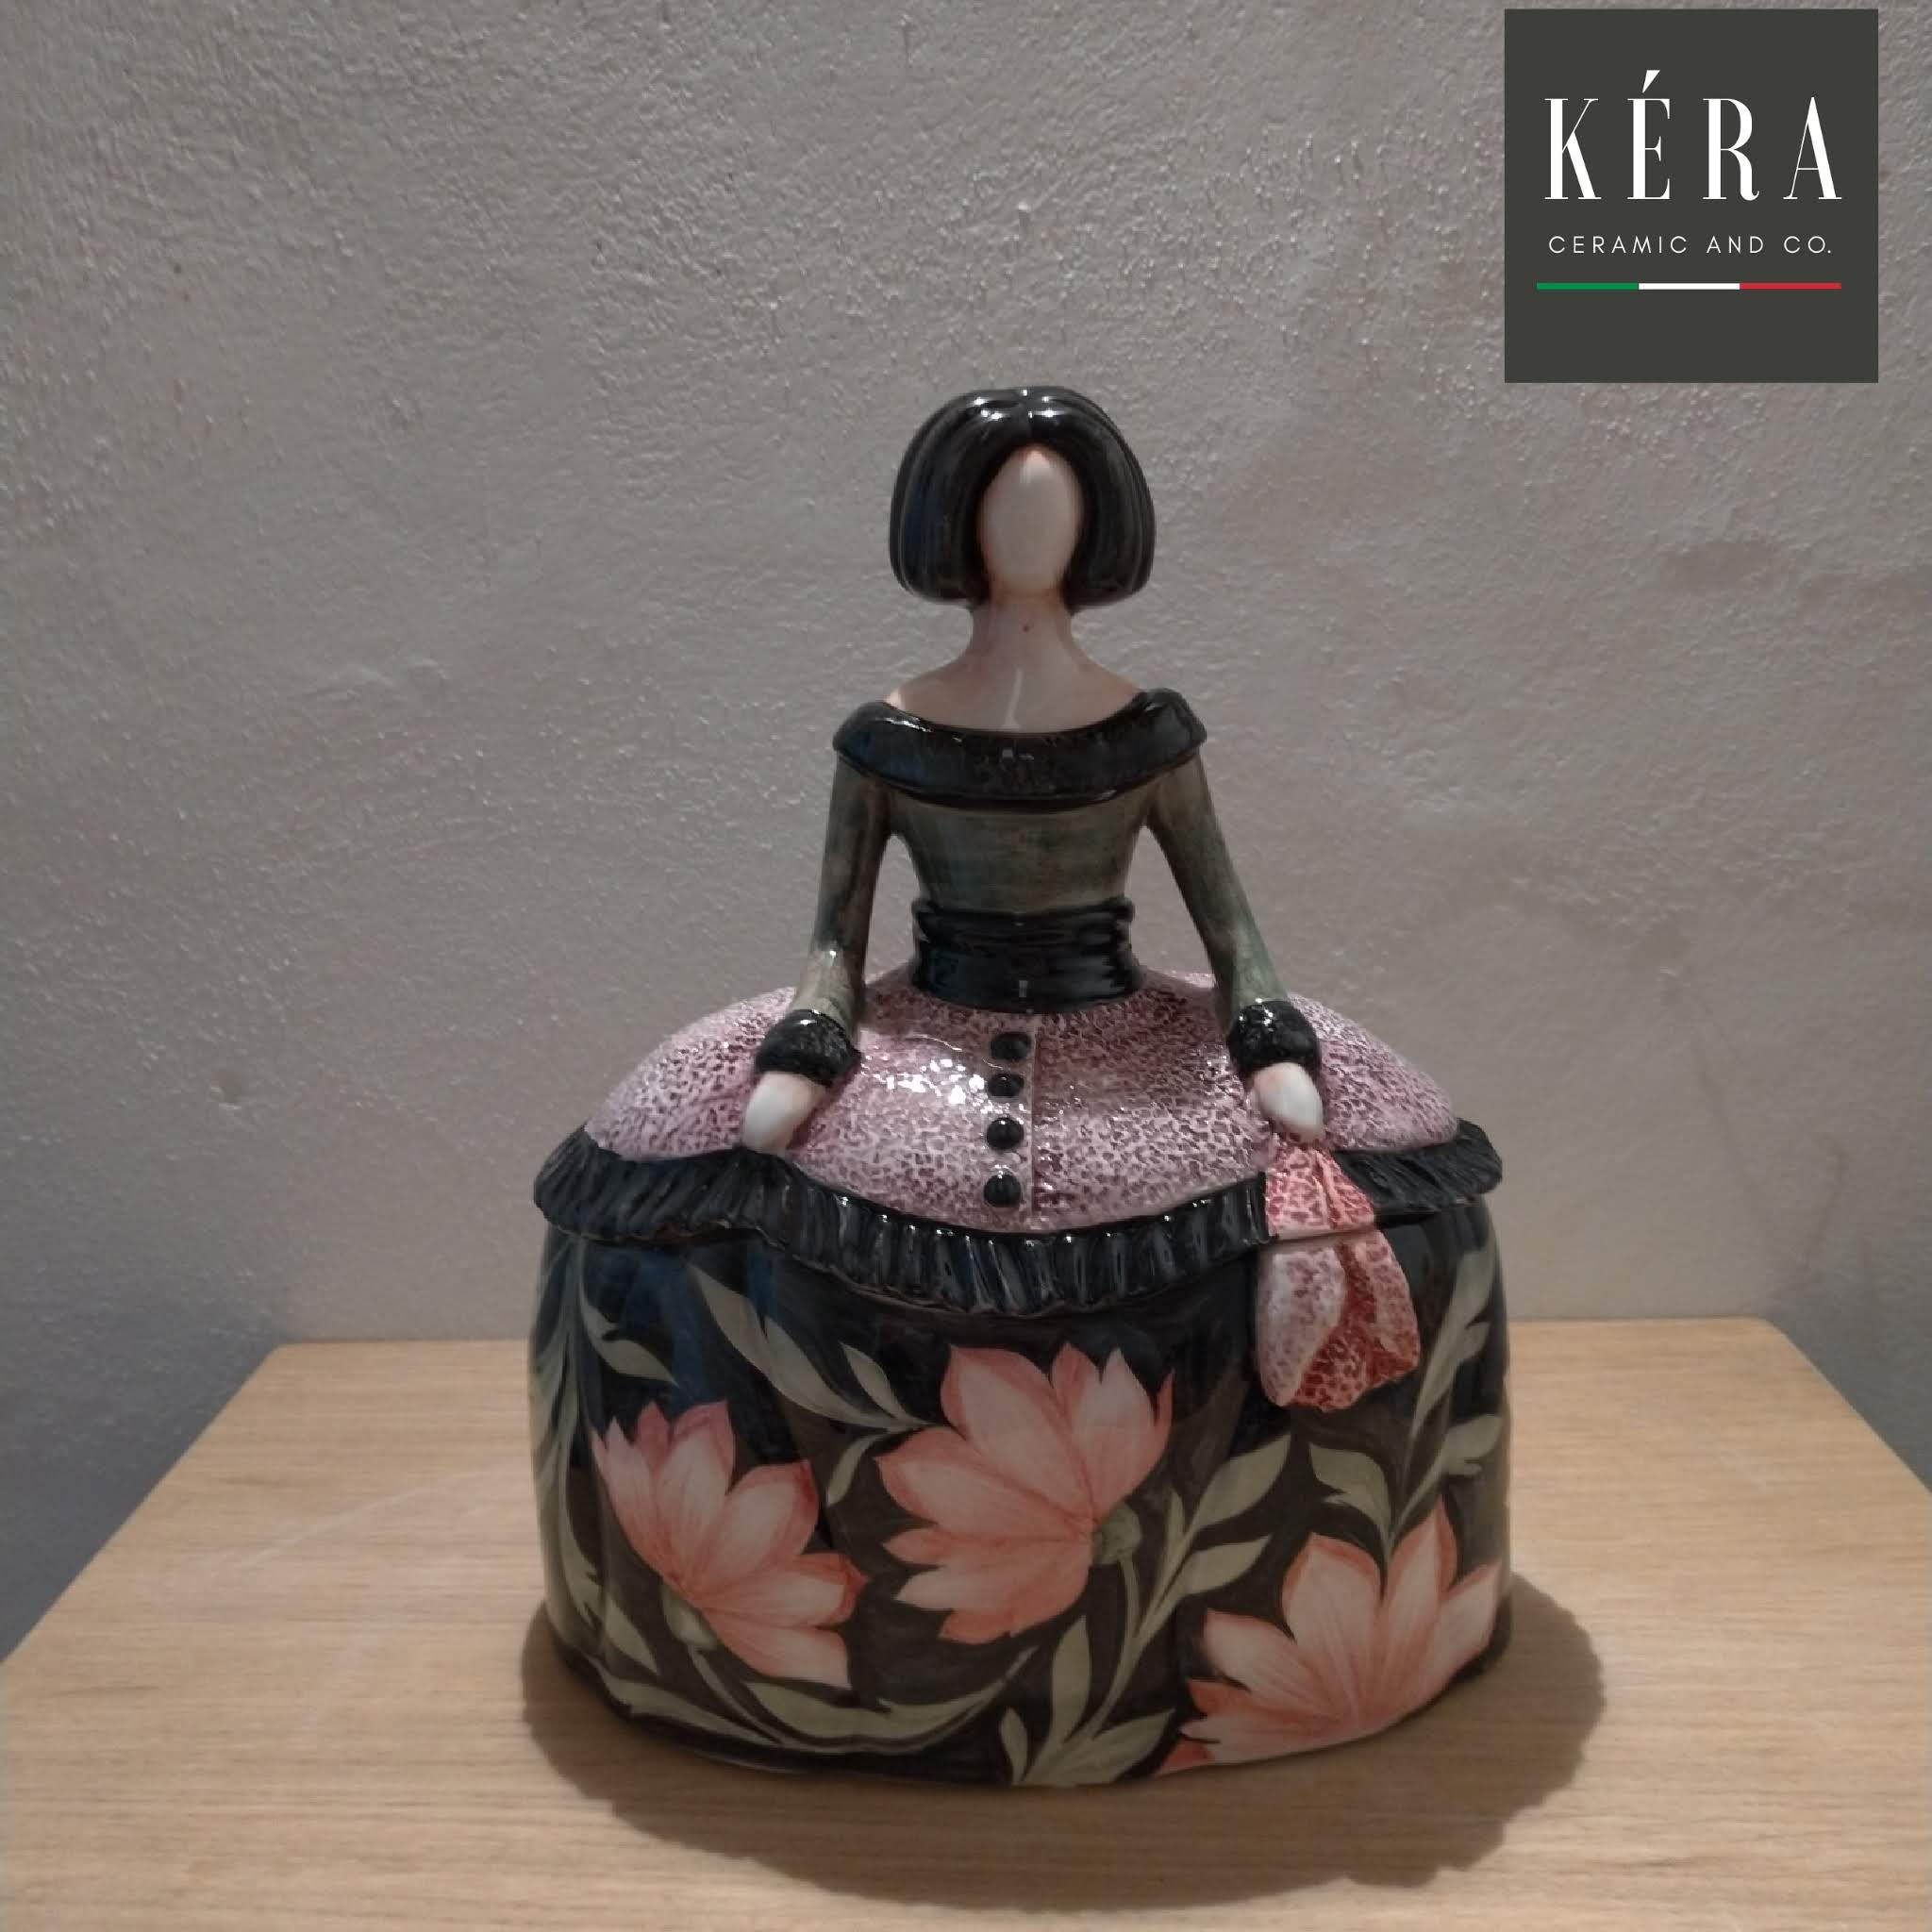 Dama portagioie in ceramica / Jewel case figurine